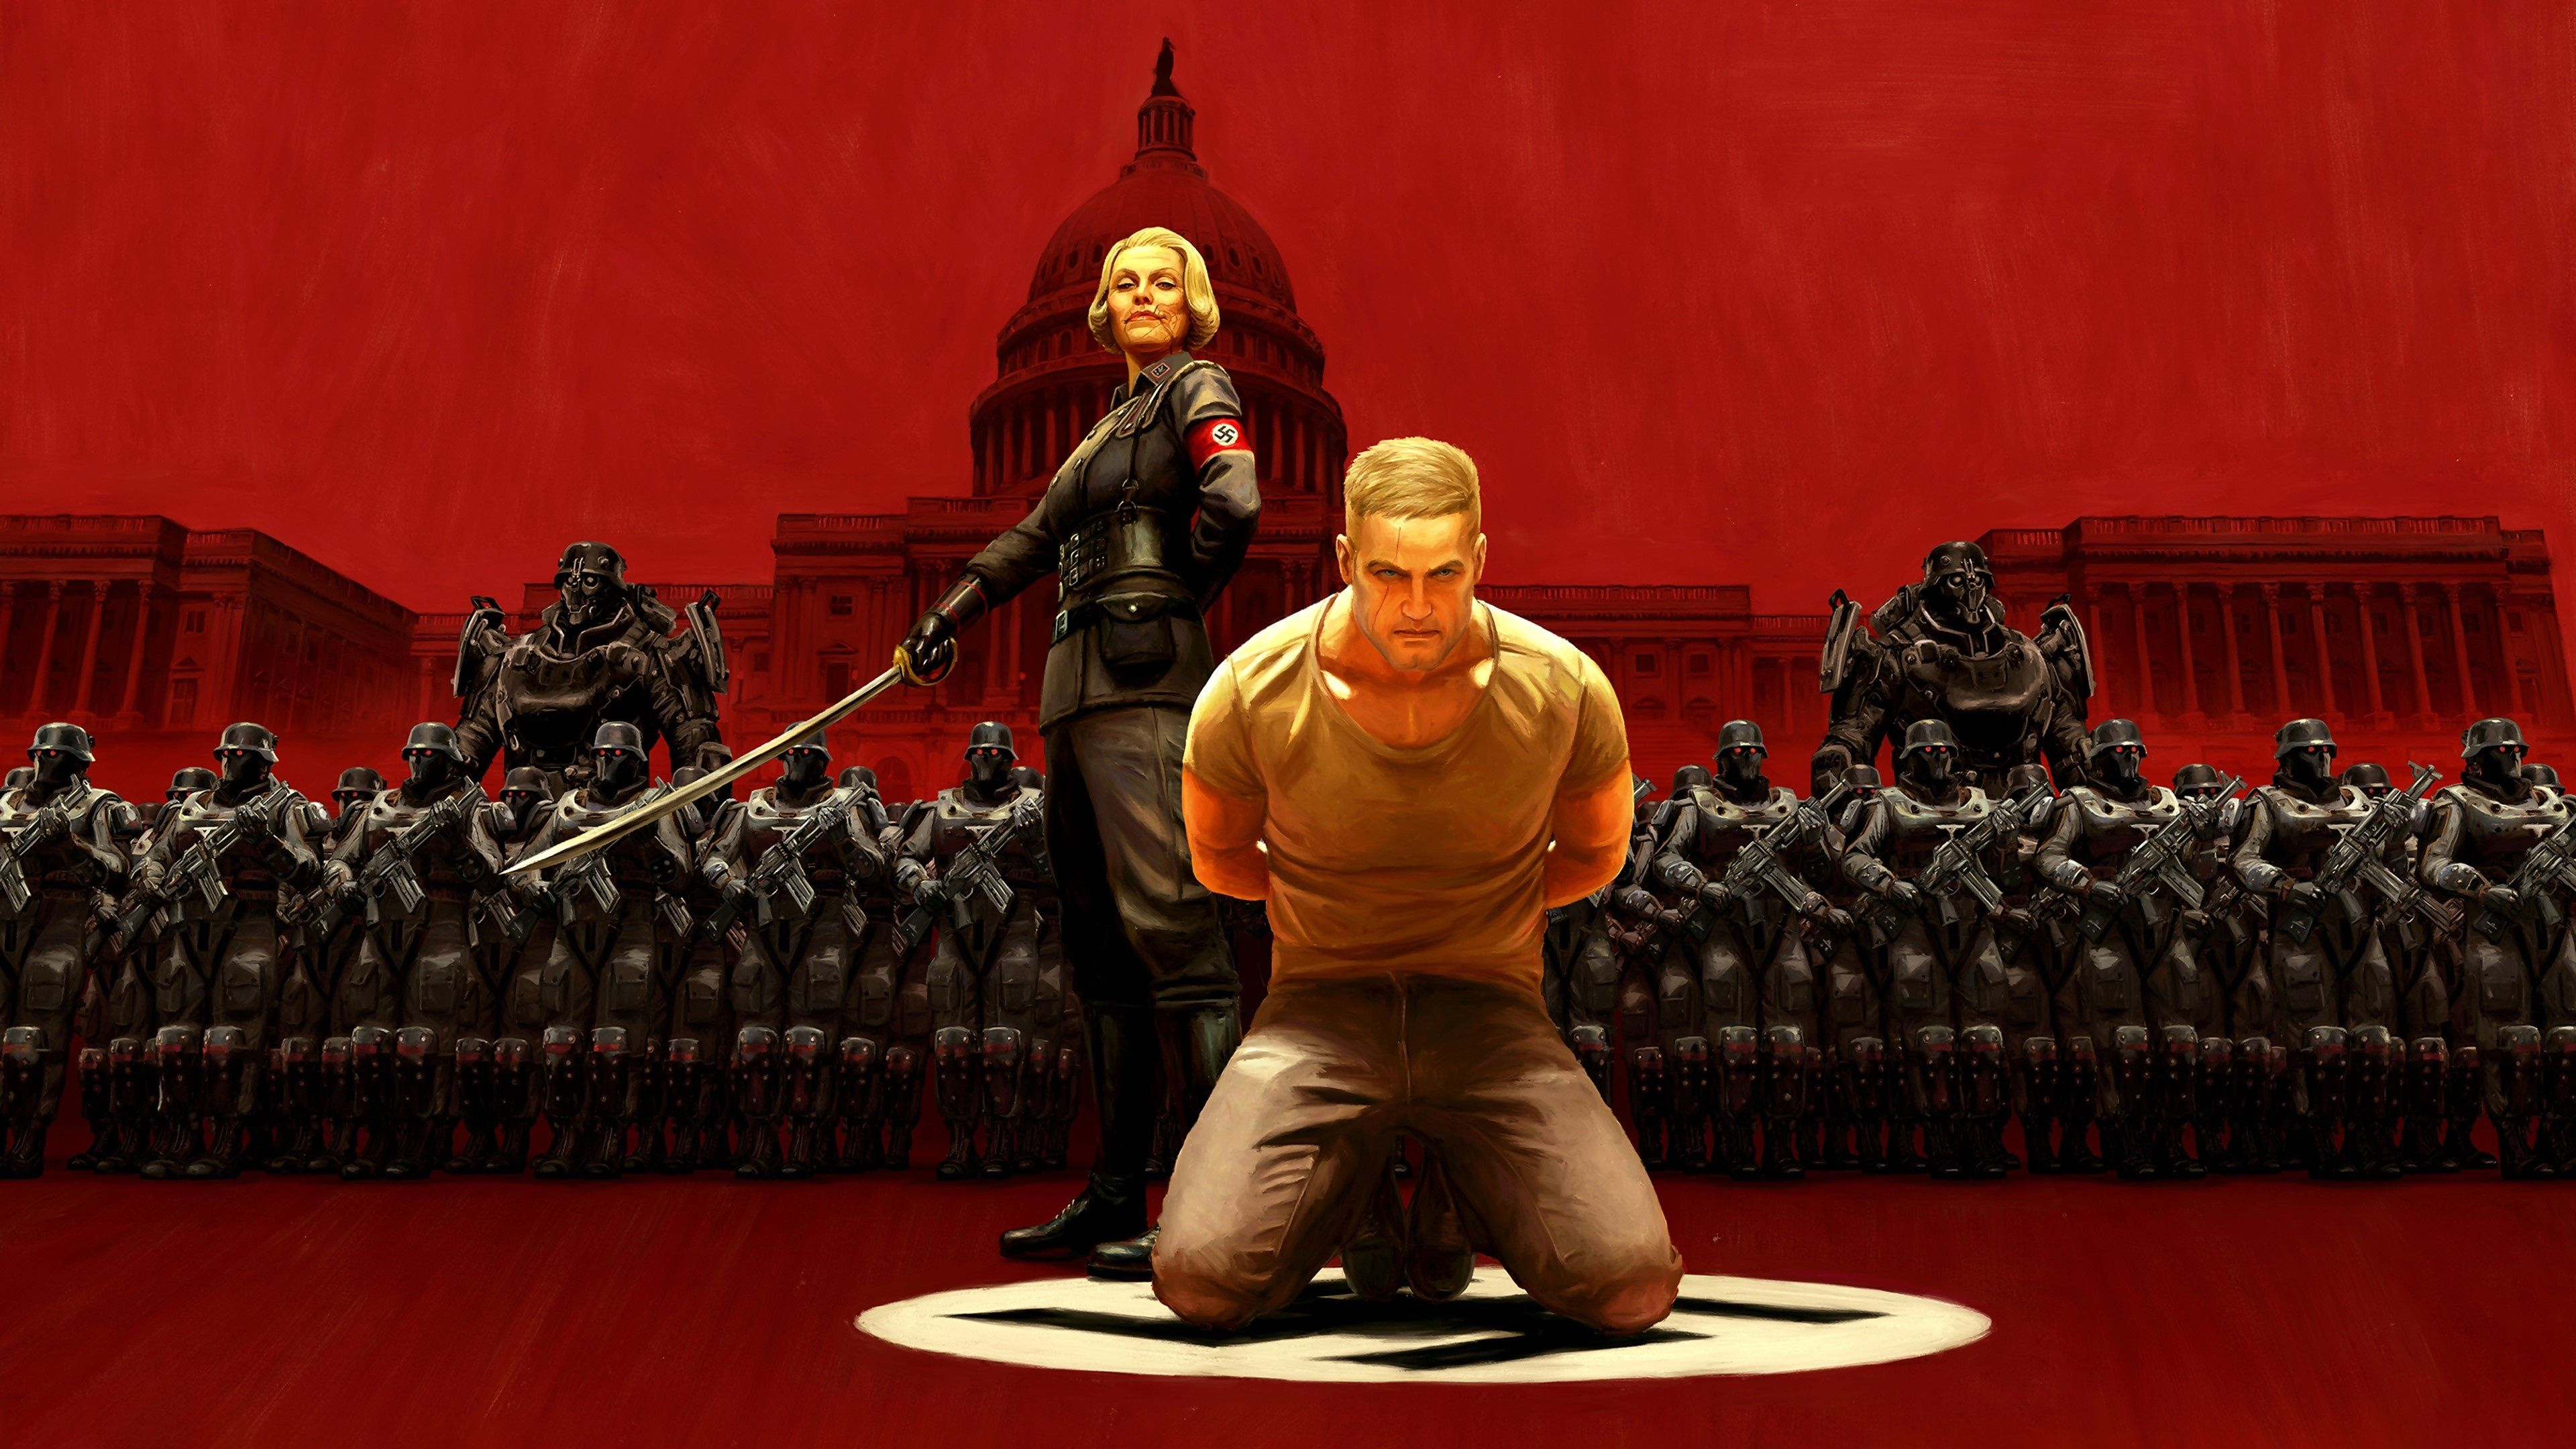 Wolfenstein Wallpapers Top Free Wolfenstein Backgrounds